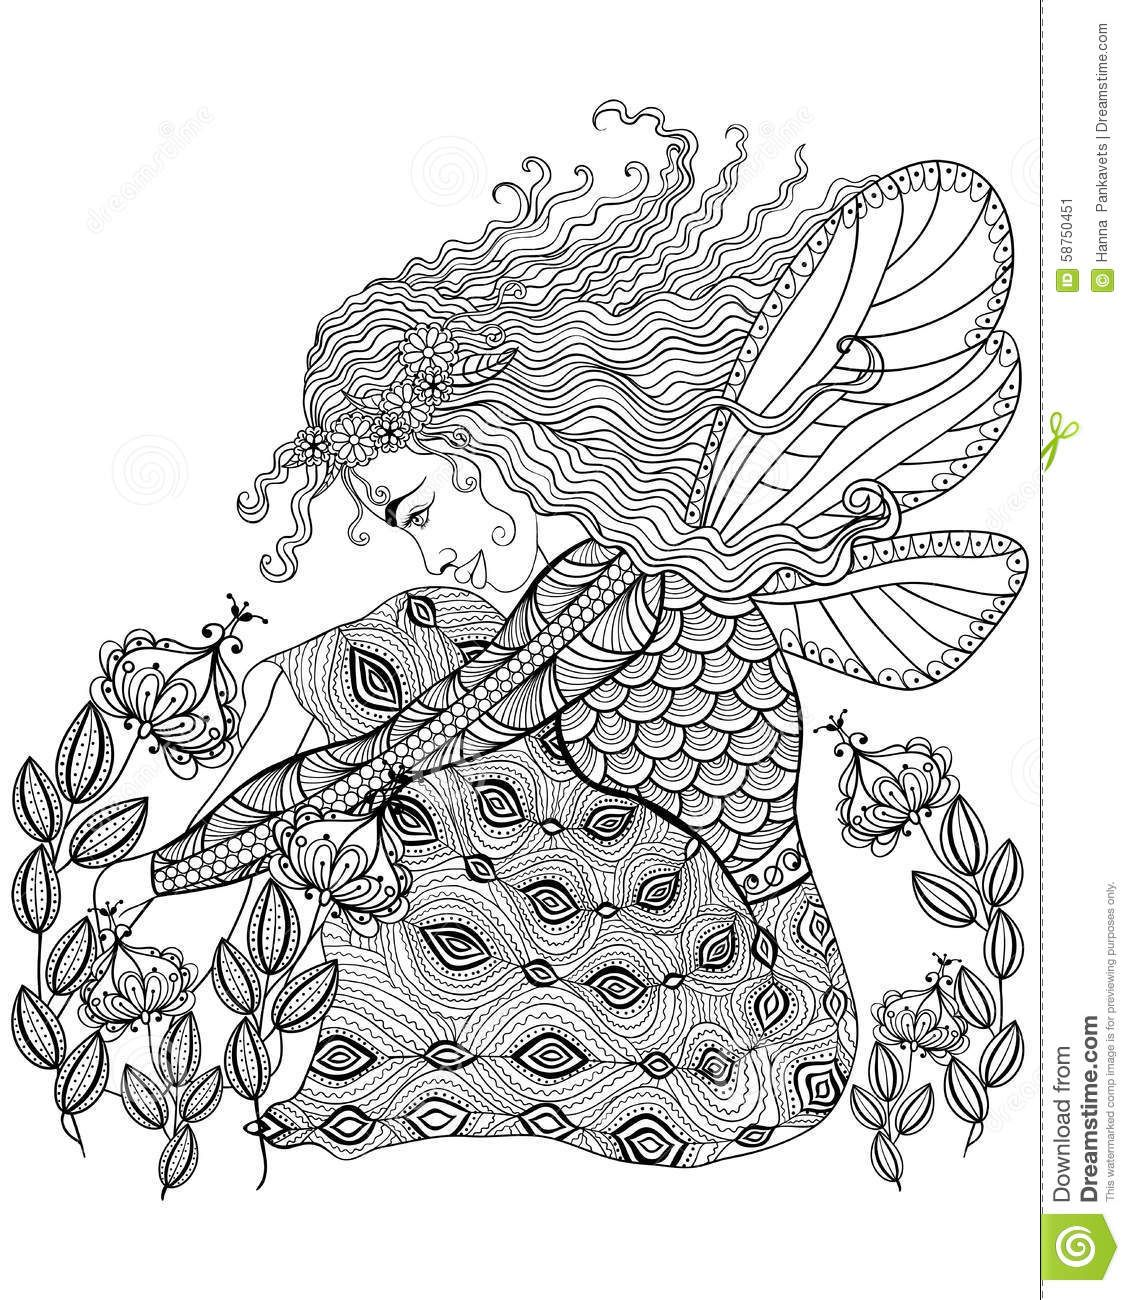 Anti stress colouring pages for adults - Forest Fairy Wings Flower Adult Anti Stress Coloring